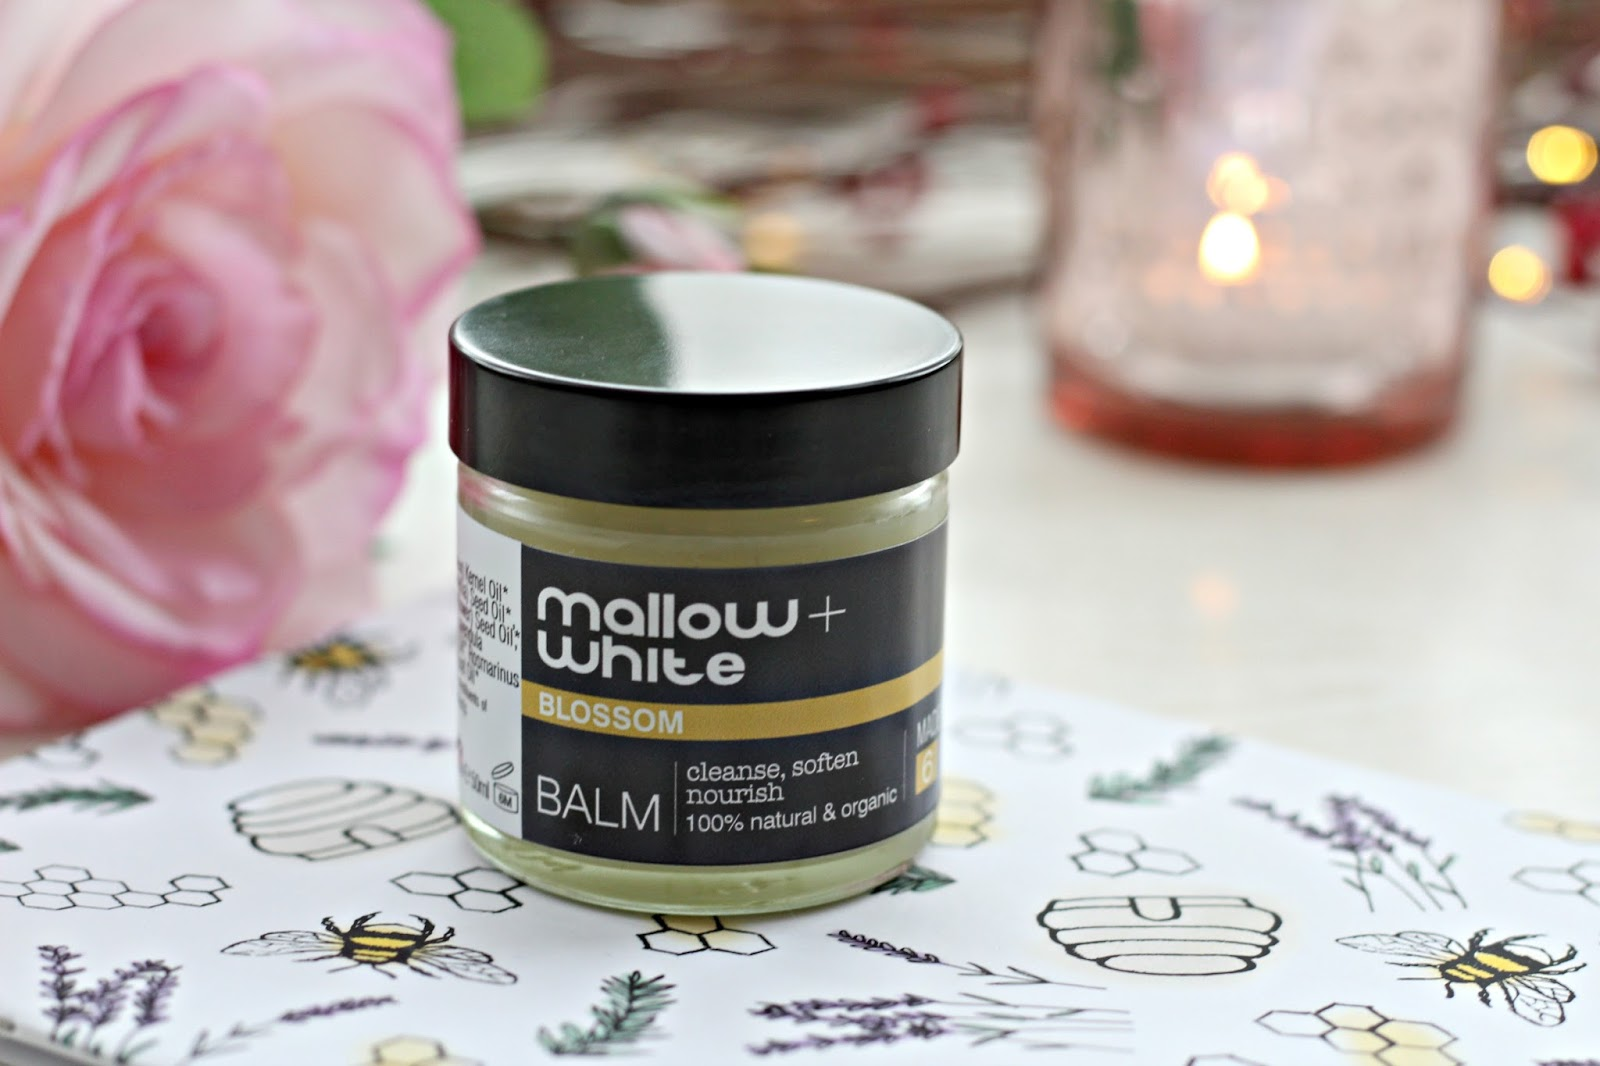 Mallow and White Blossom Balm review